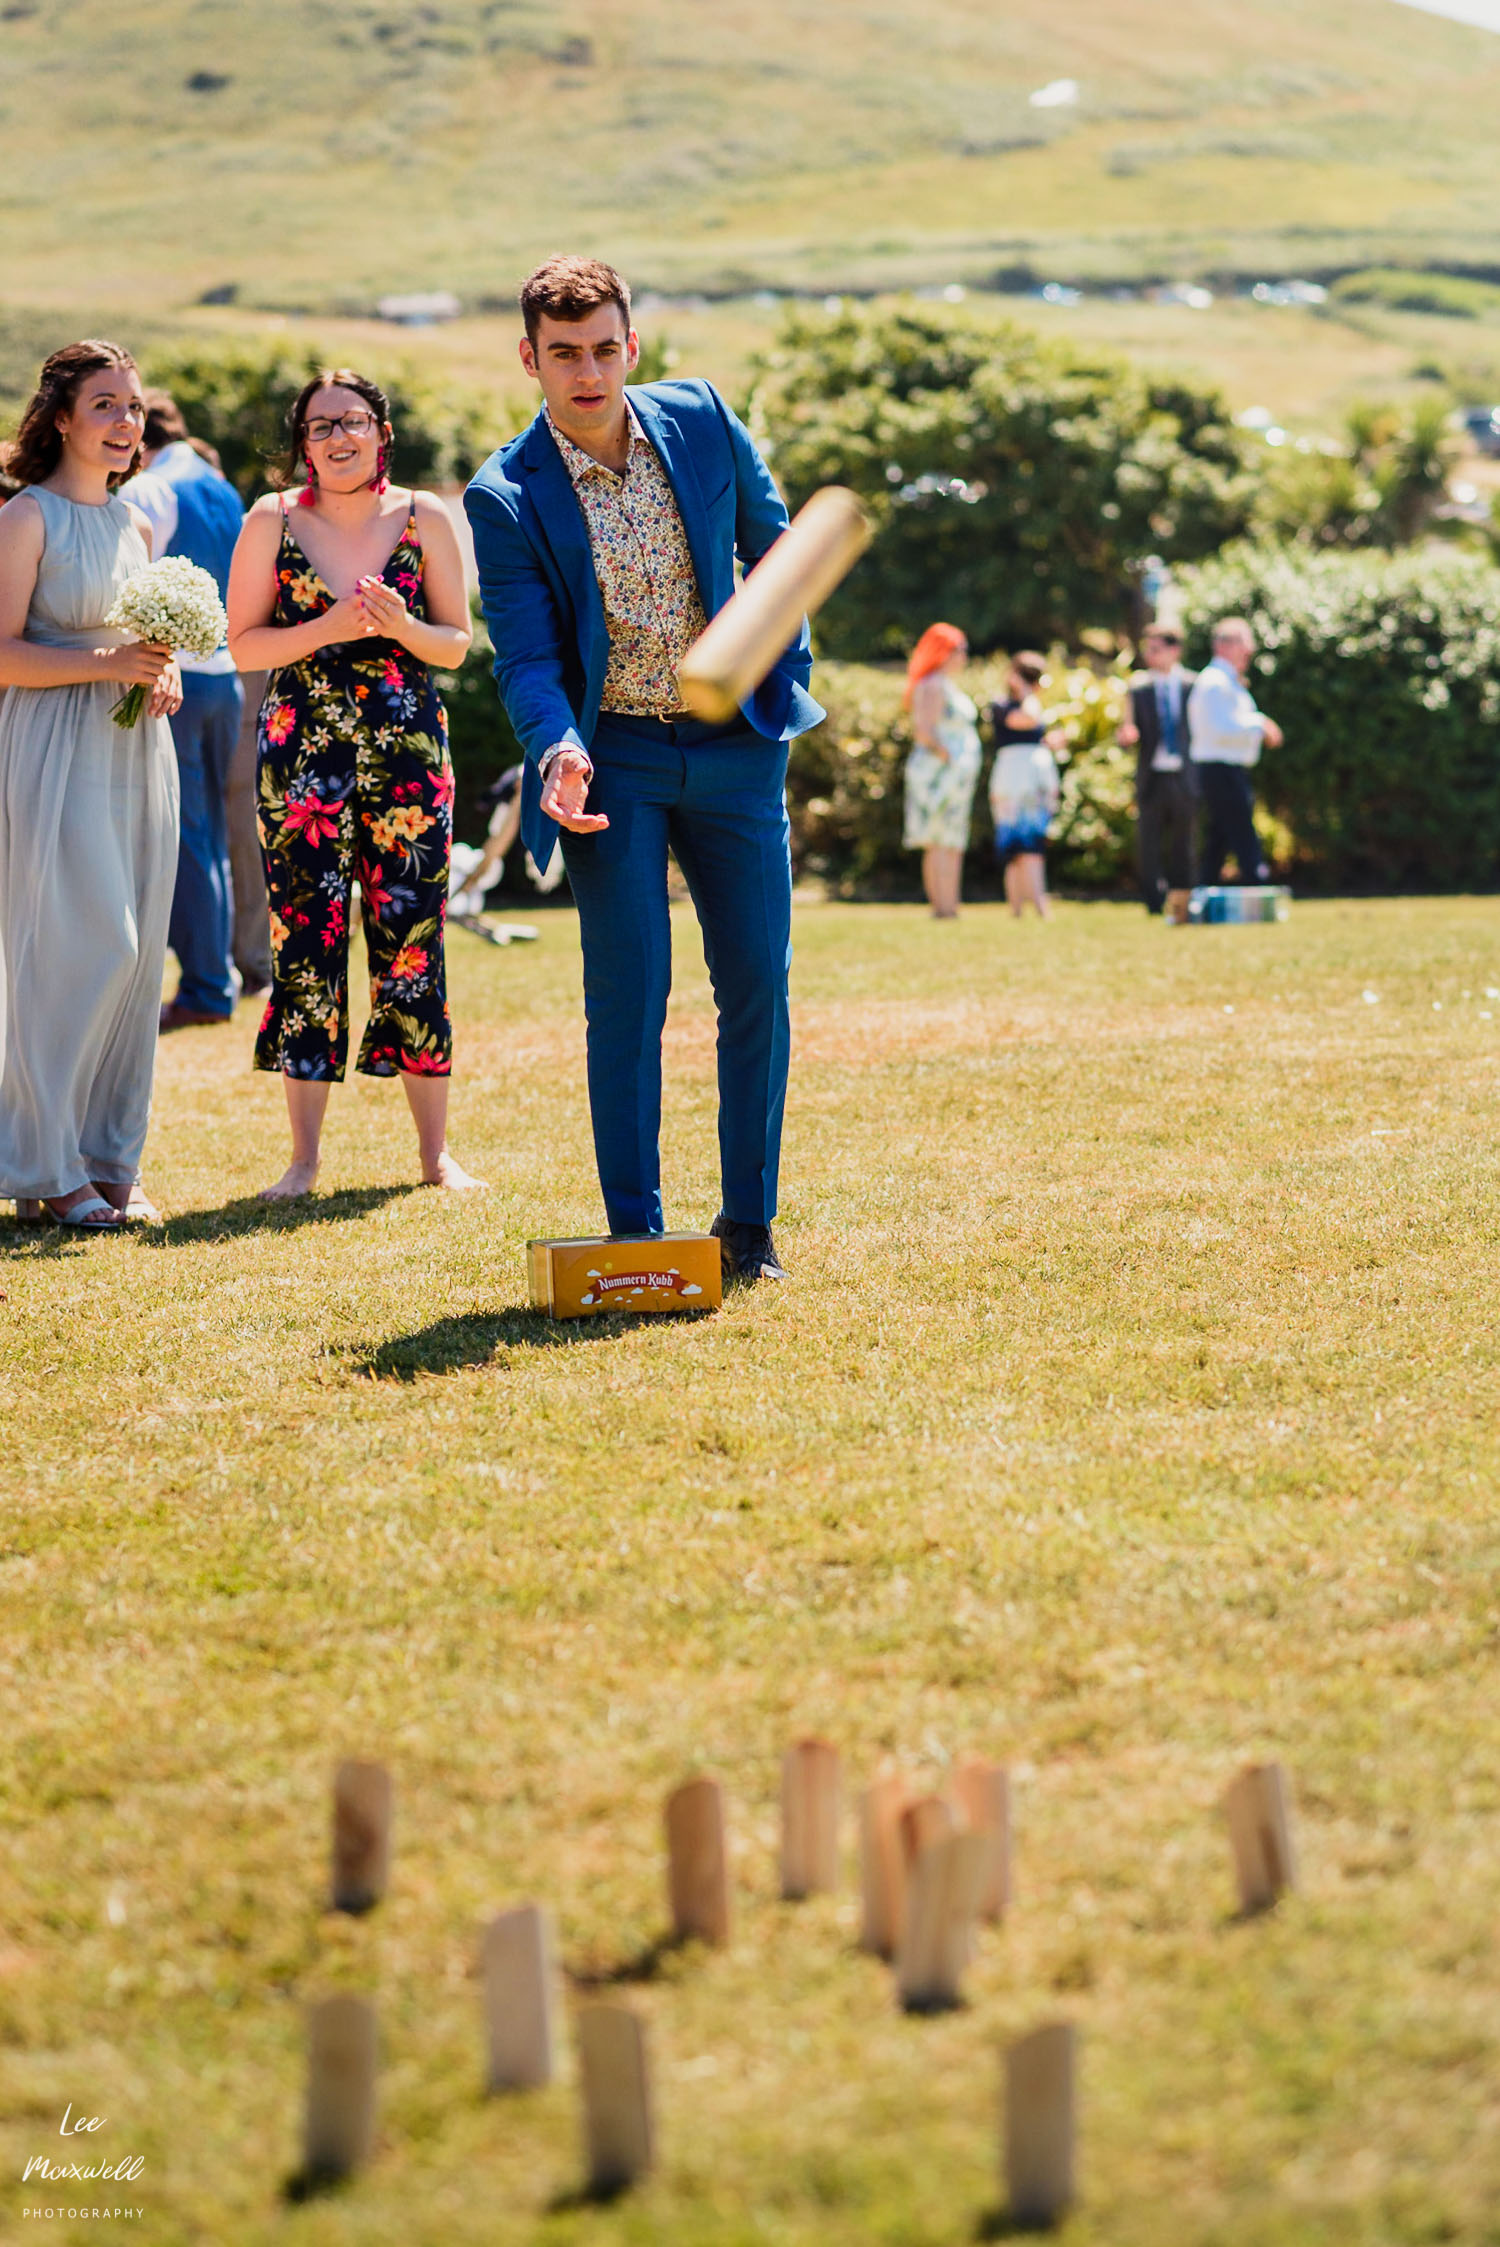 Wedding guest playing games